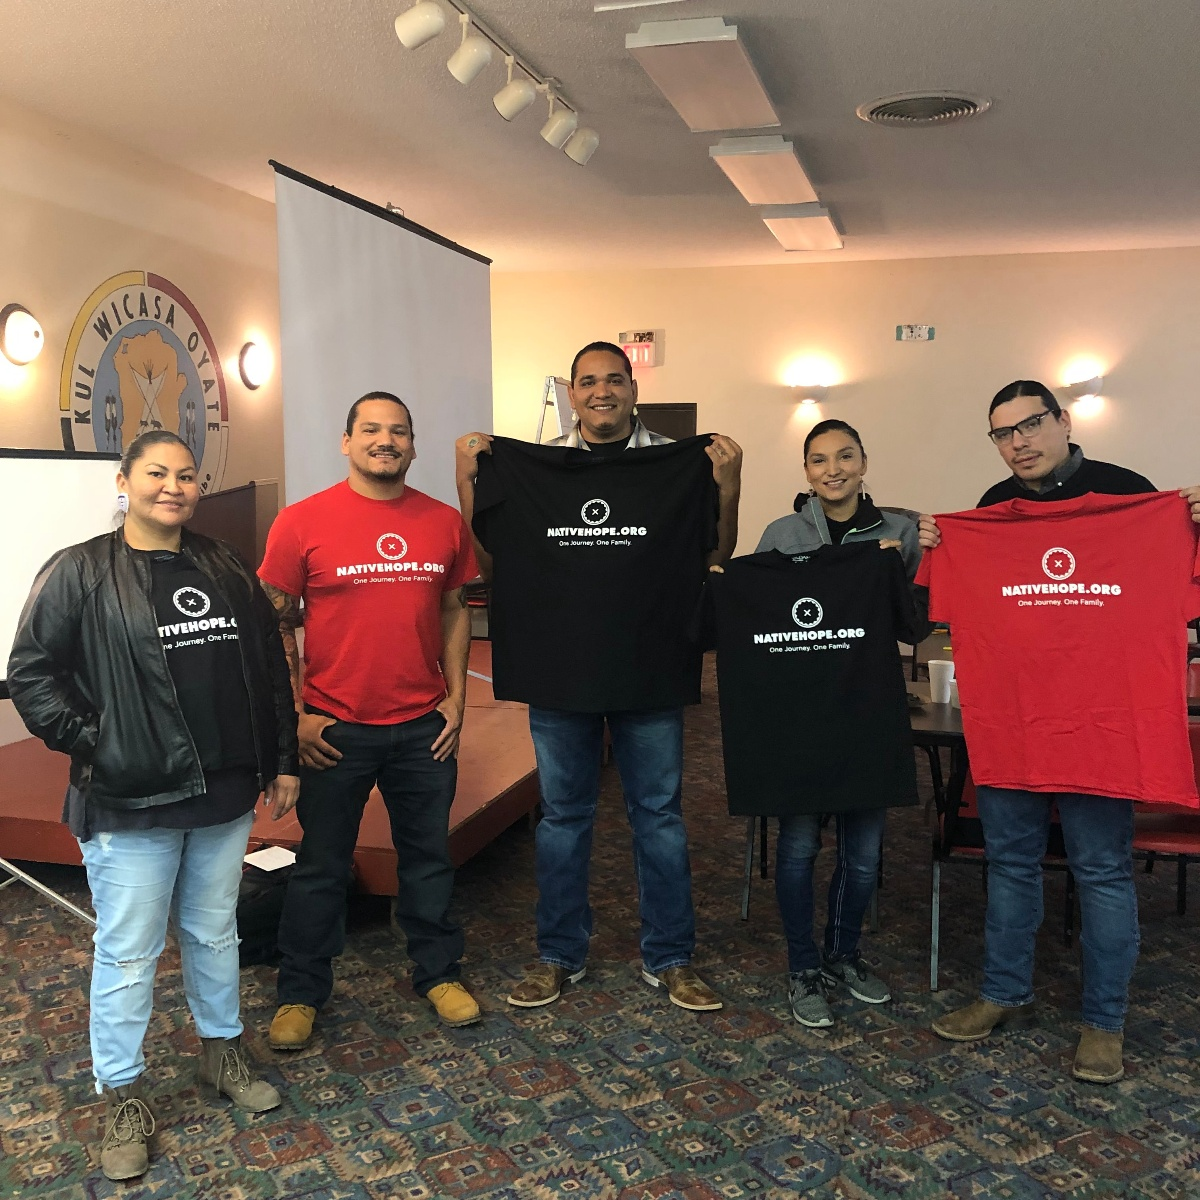 smiling group of people holding native hope shirts